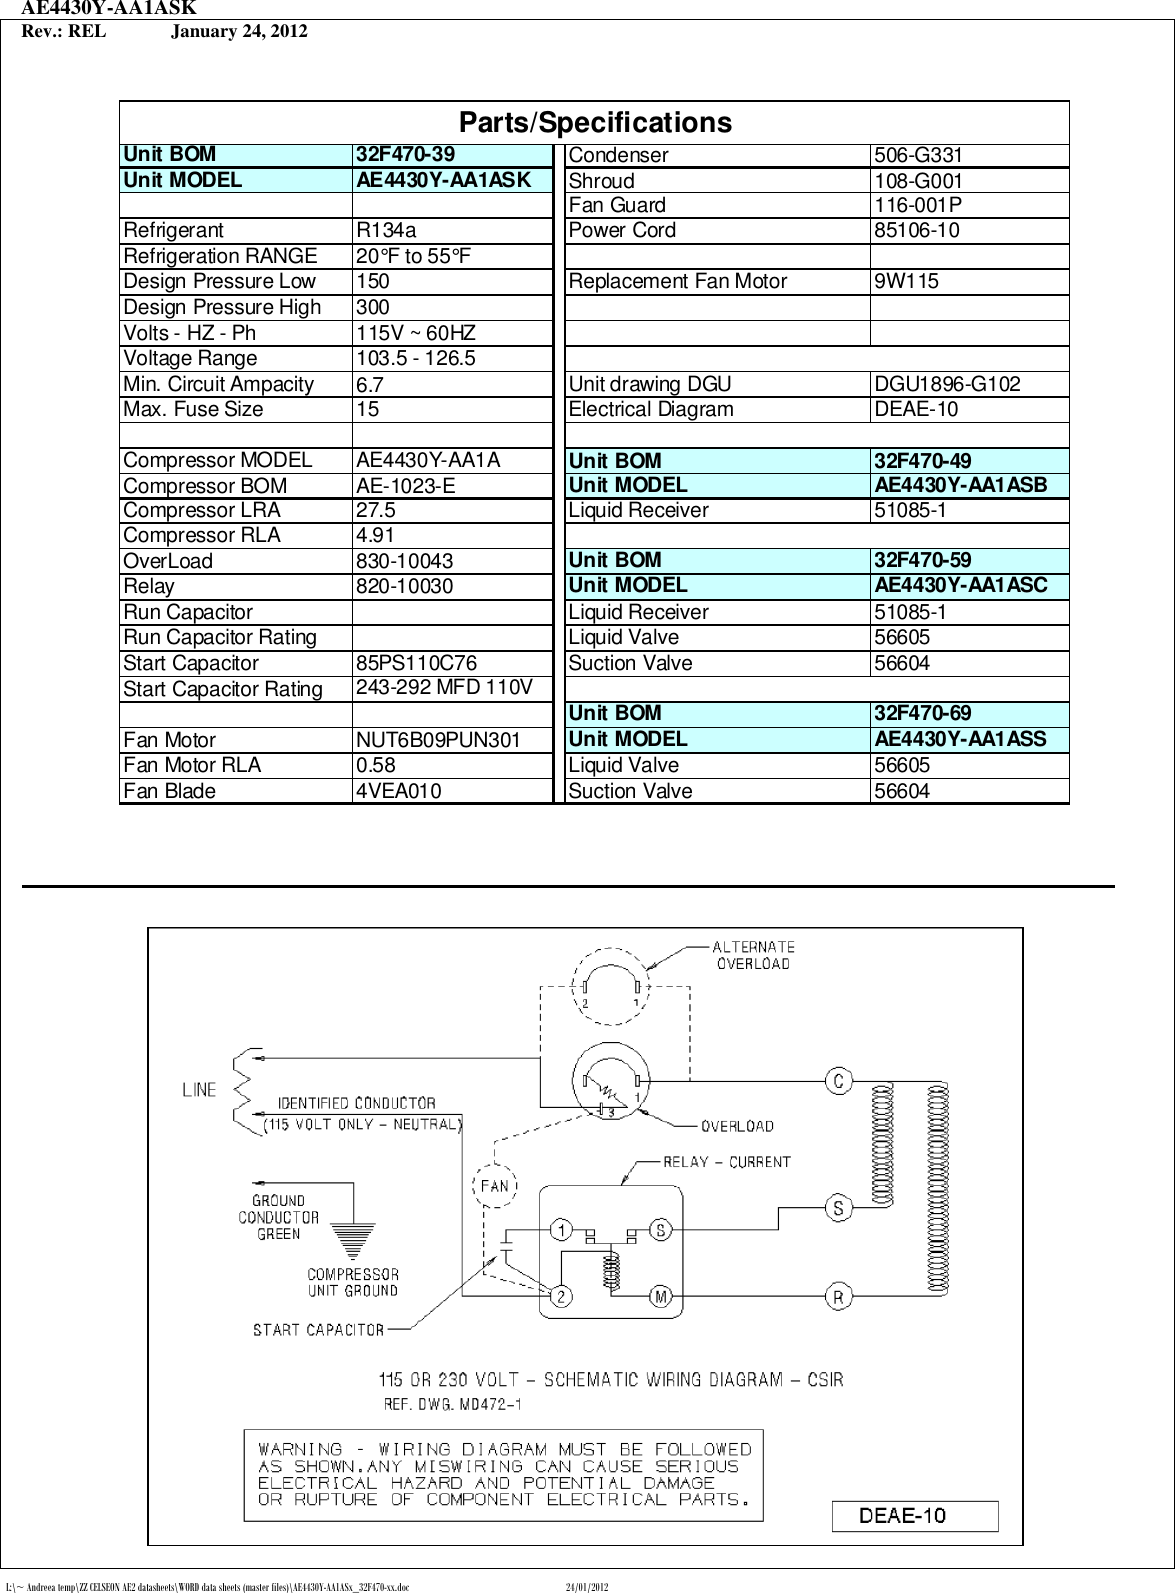 Tecumseh Ae4430y Aa1asb Performance Data Sheet Aa1asx 32f470 Xx Wiring Diagram Page 2 Of